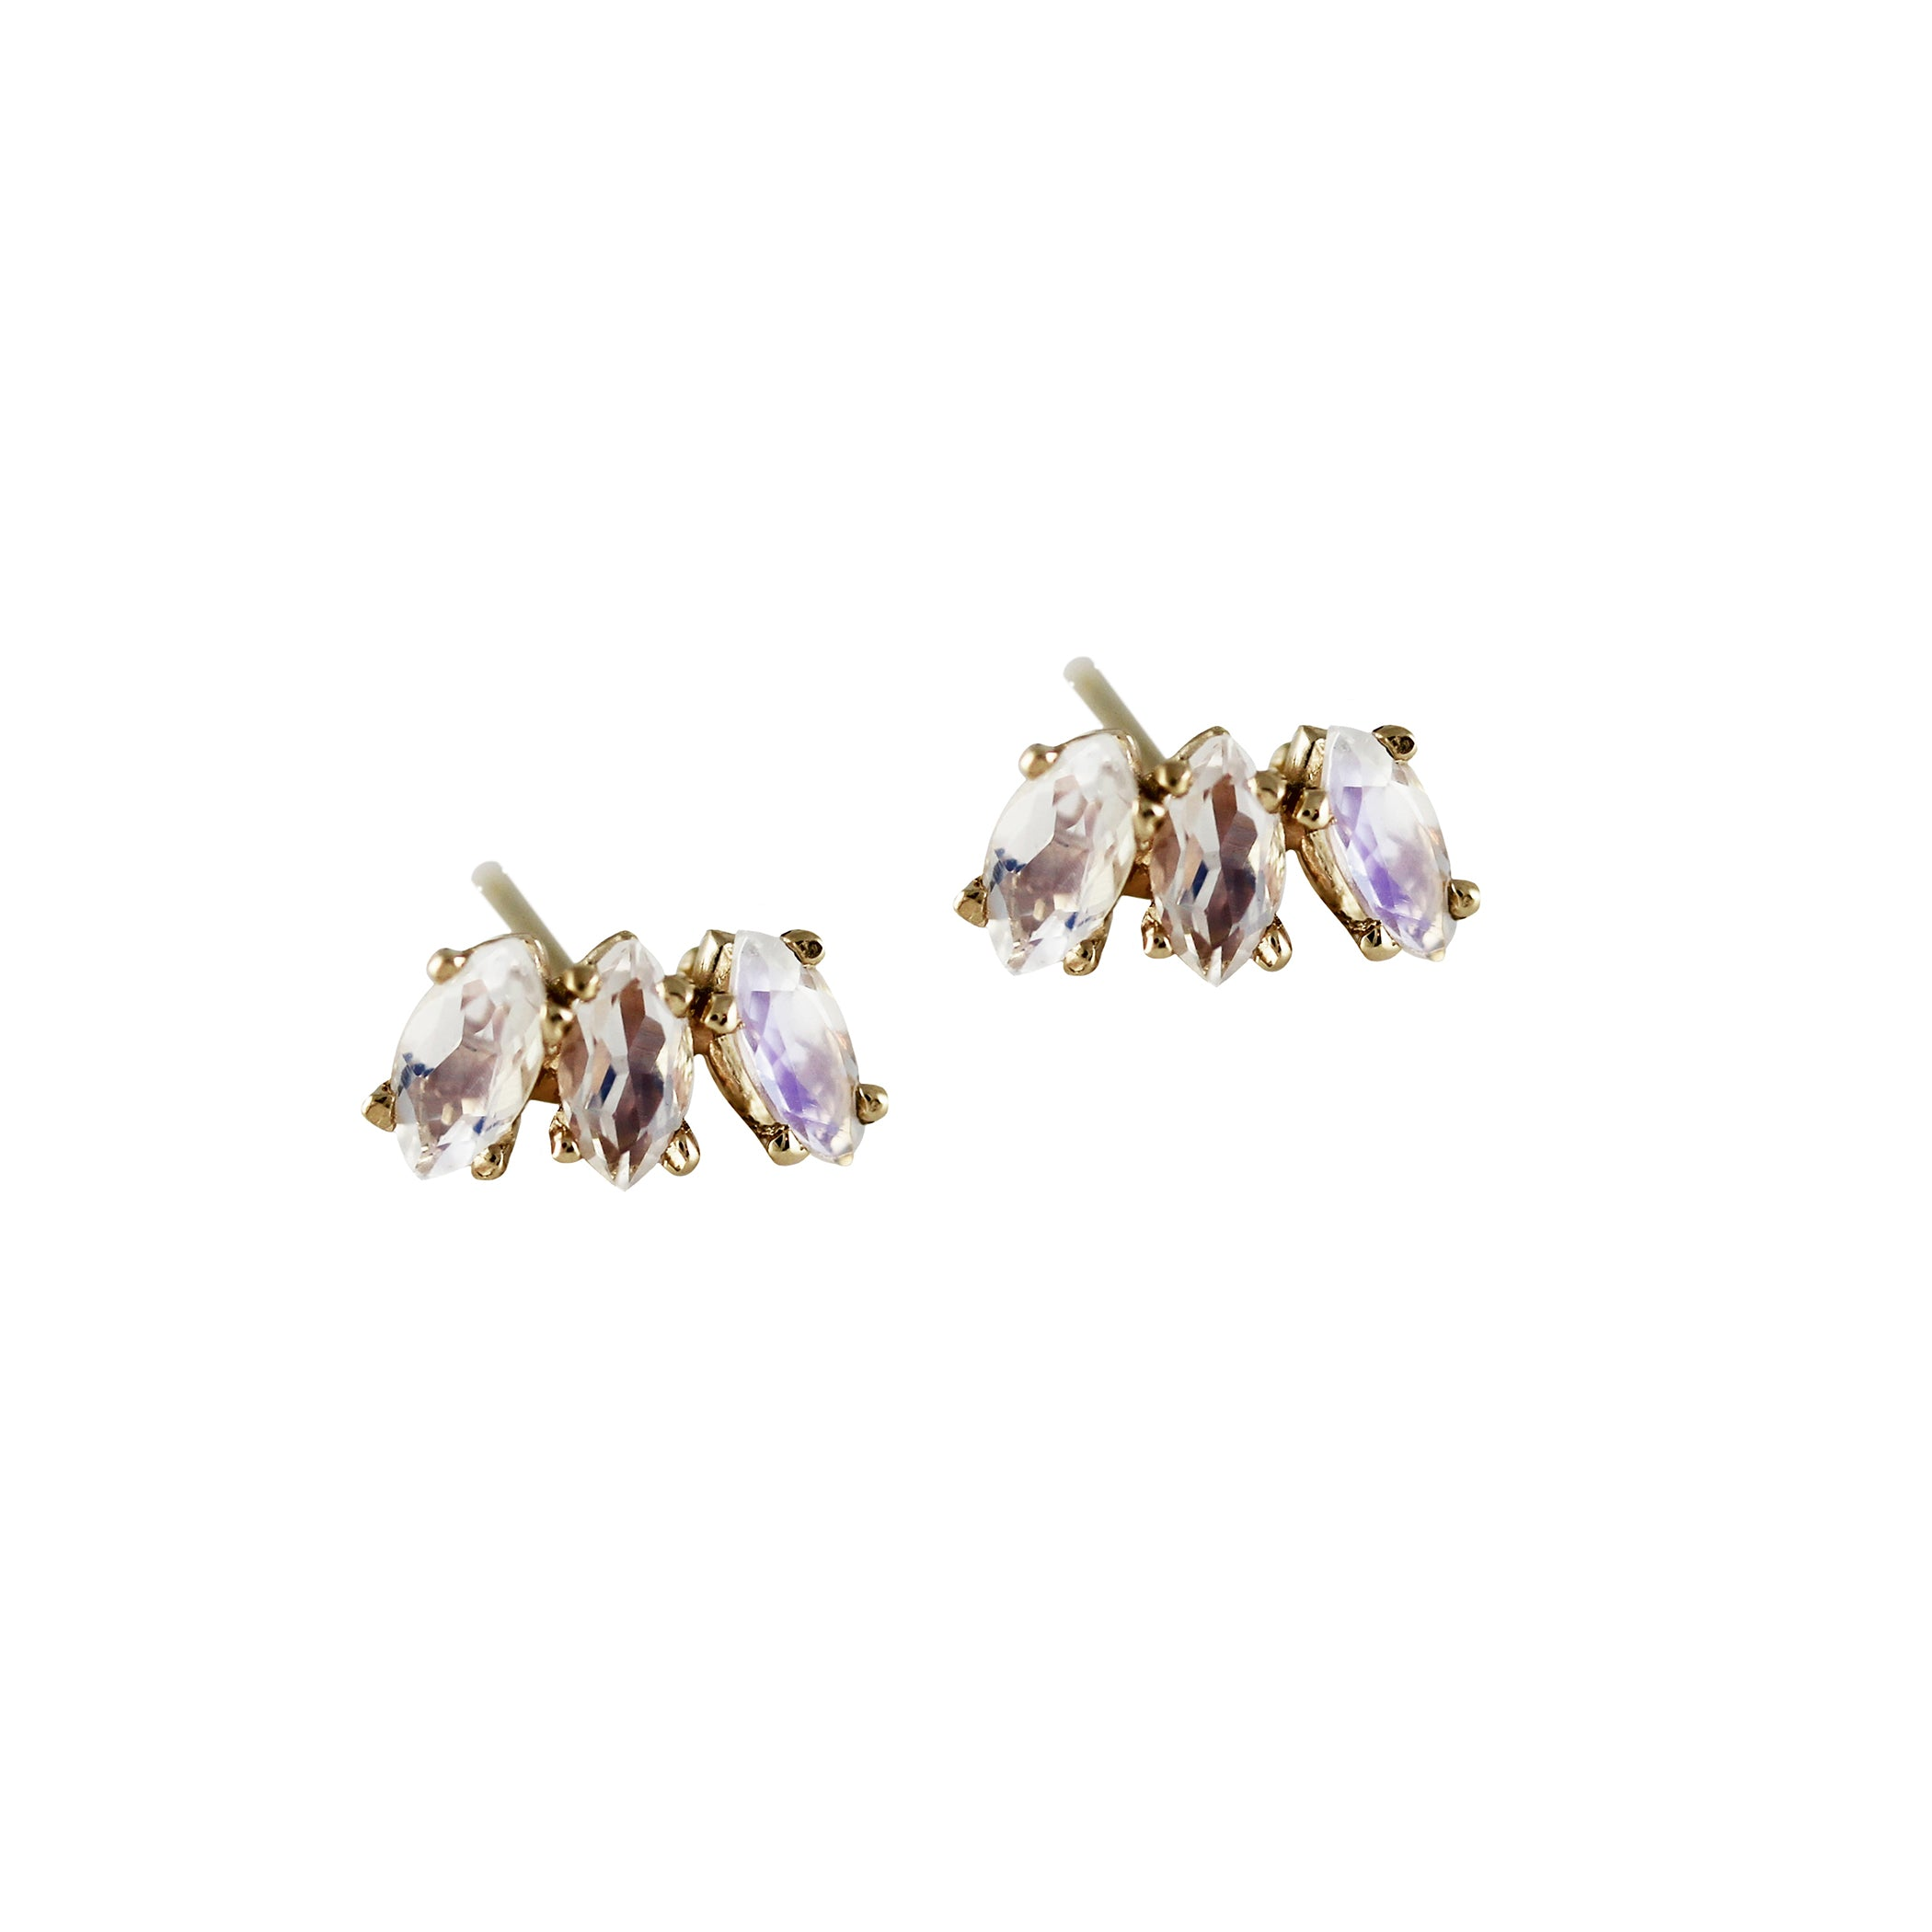 screw stud de carat marquise studs floral white cut gold backs itm earrings diamond logo